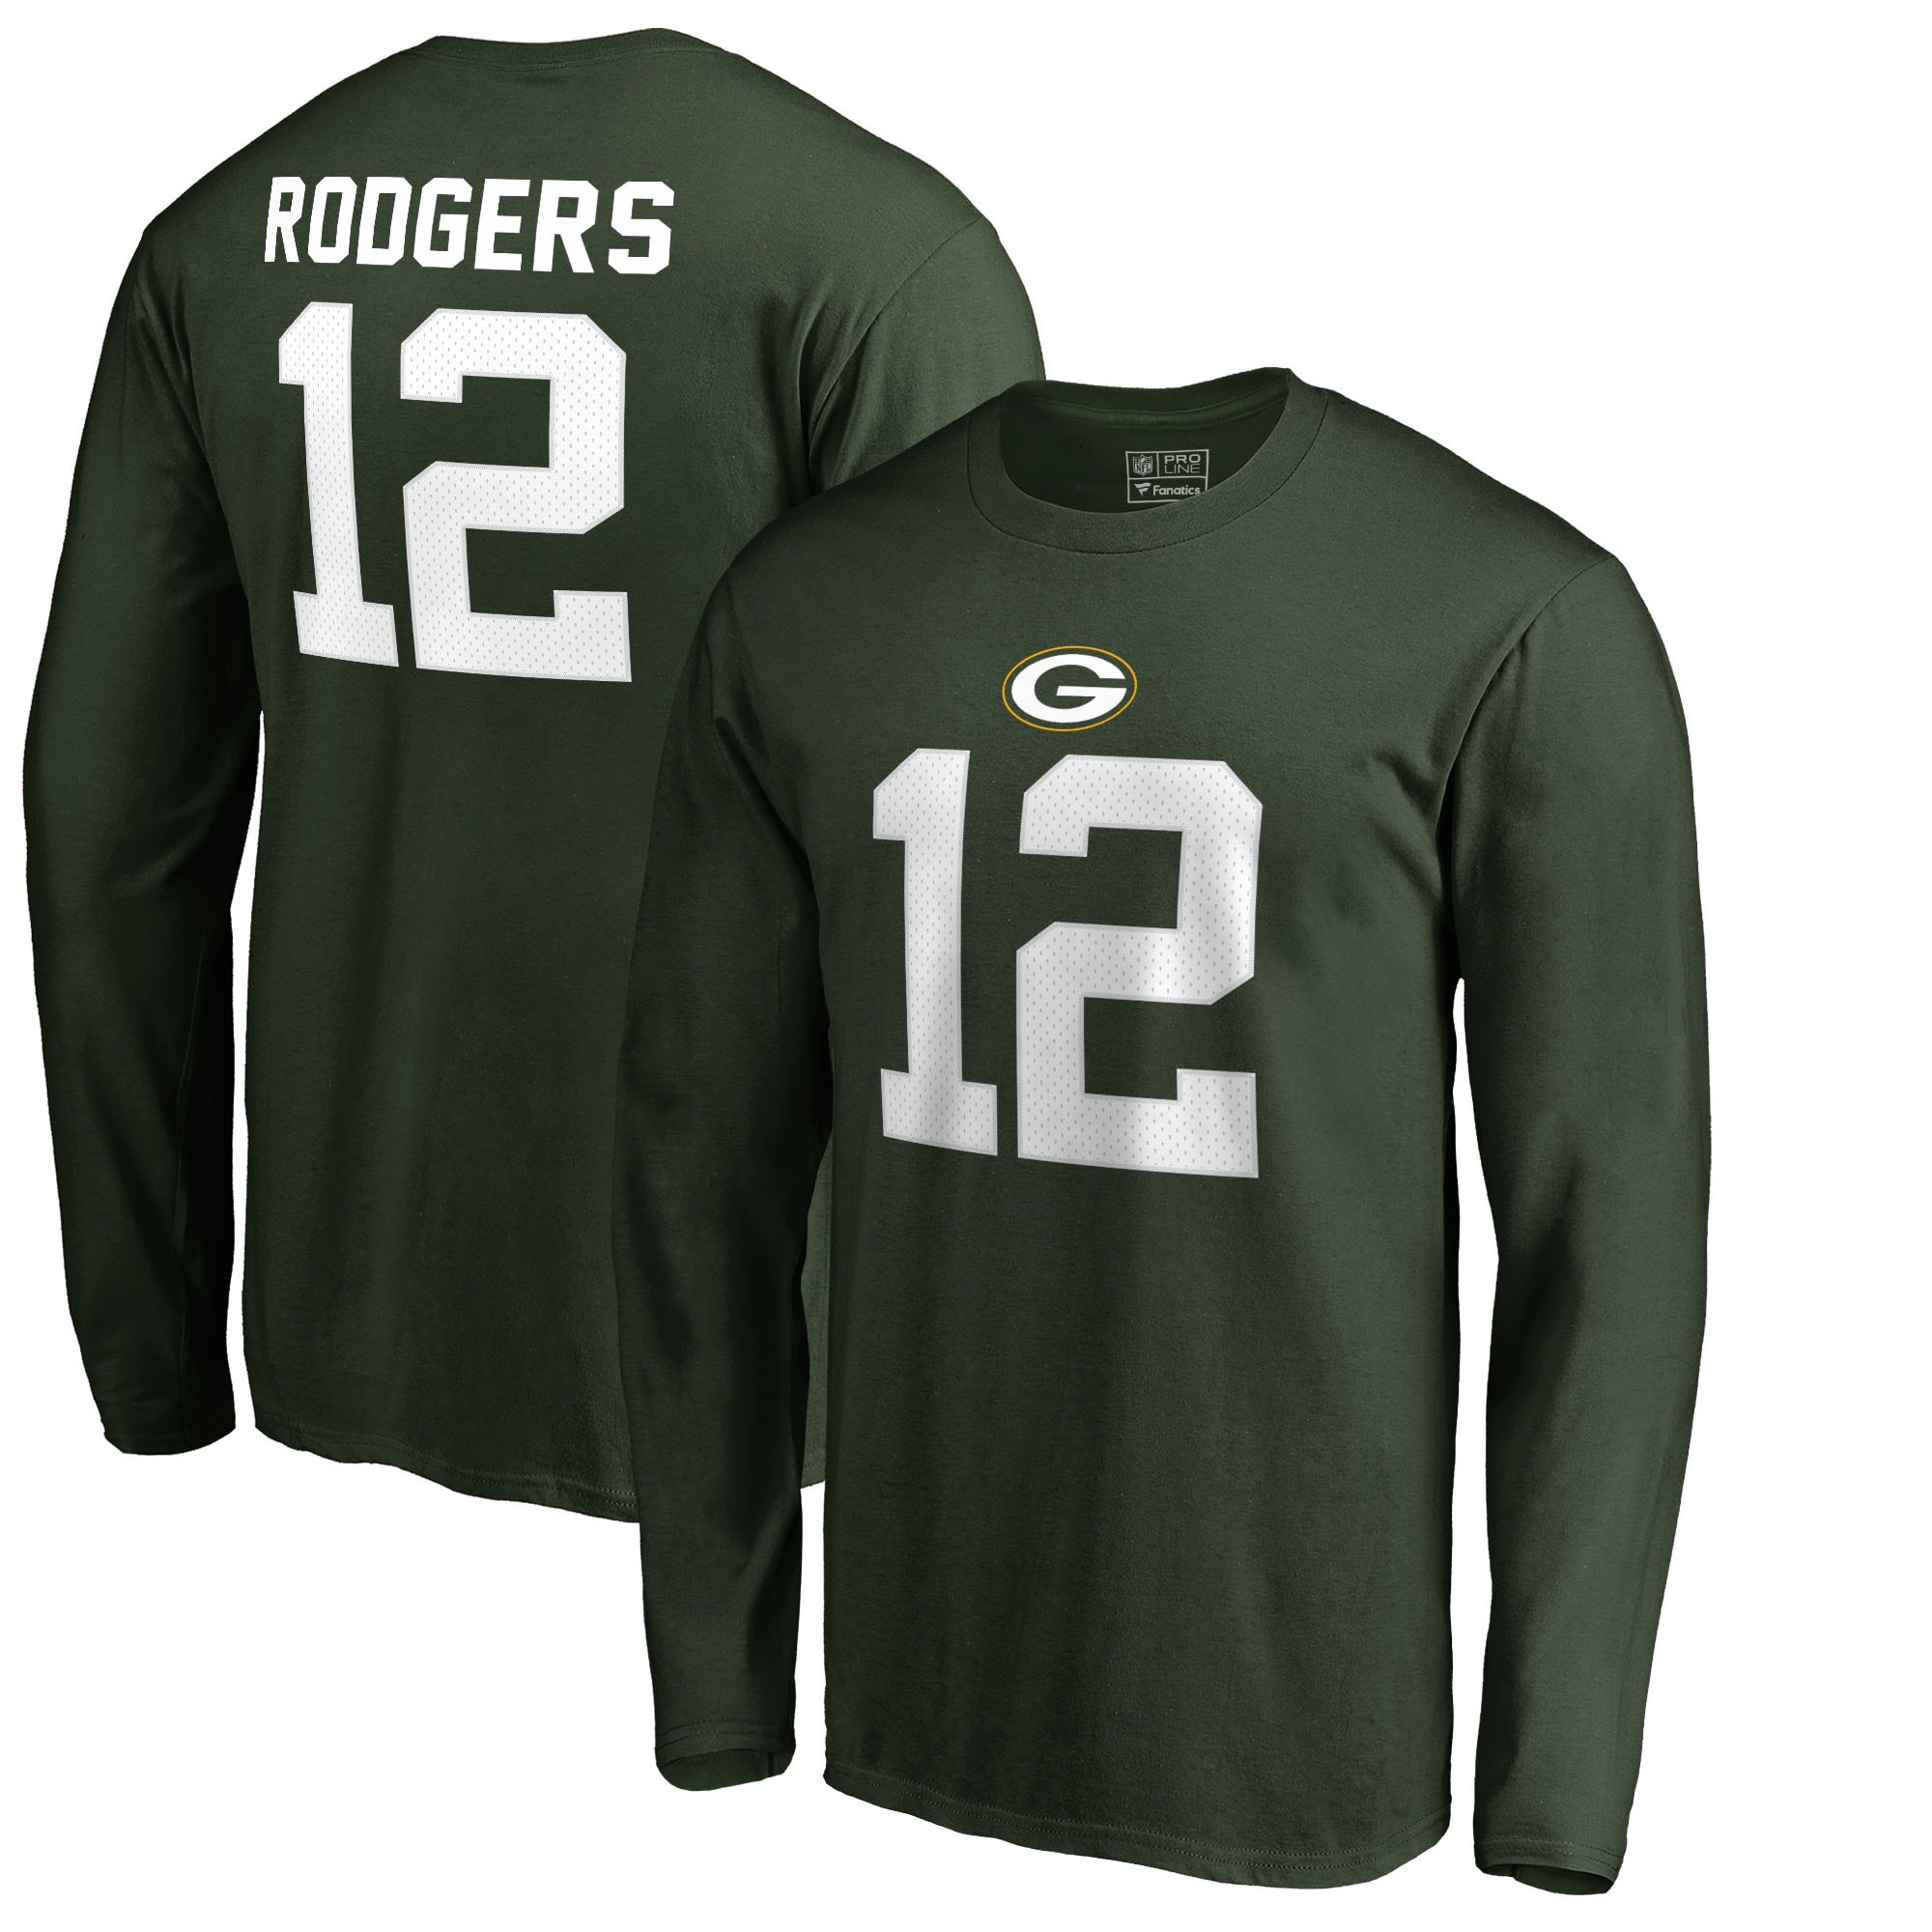 Aaron Rodgers Green Bay Packers NFL Pro Line by Fanatics Branded Authentic Stack Name & Number Long Sleeve T-Shirt - Green